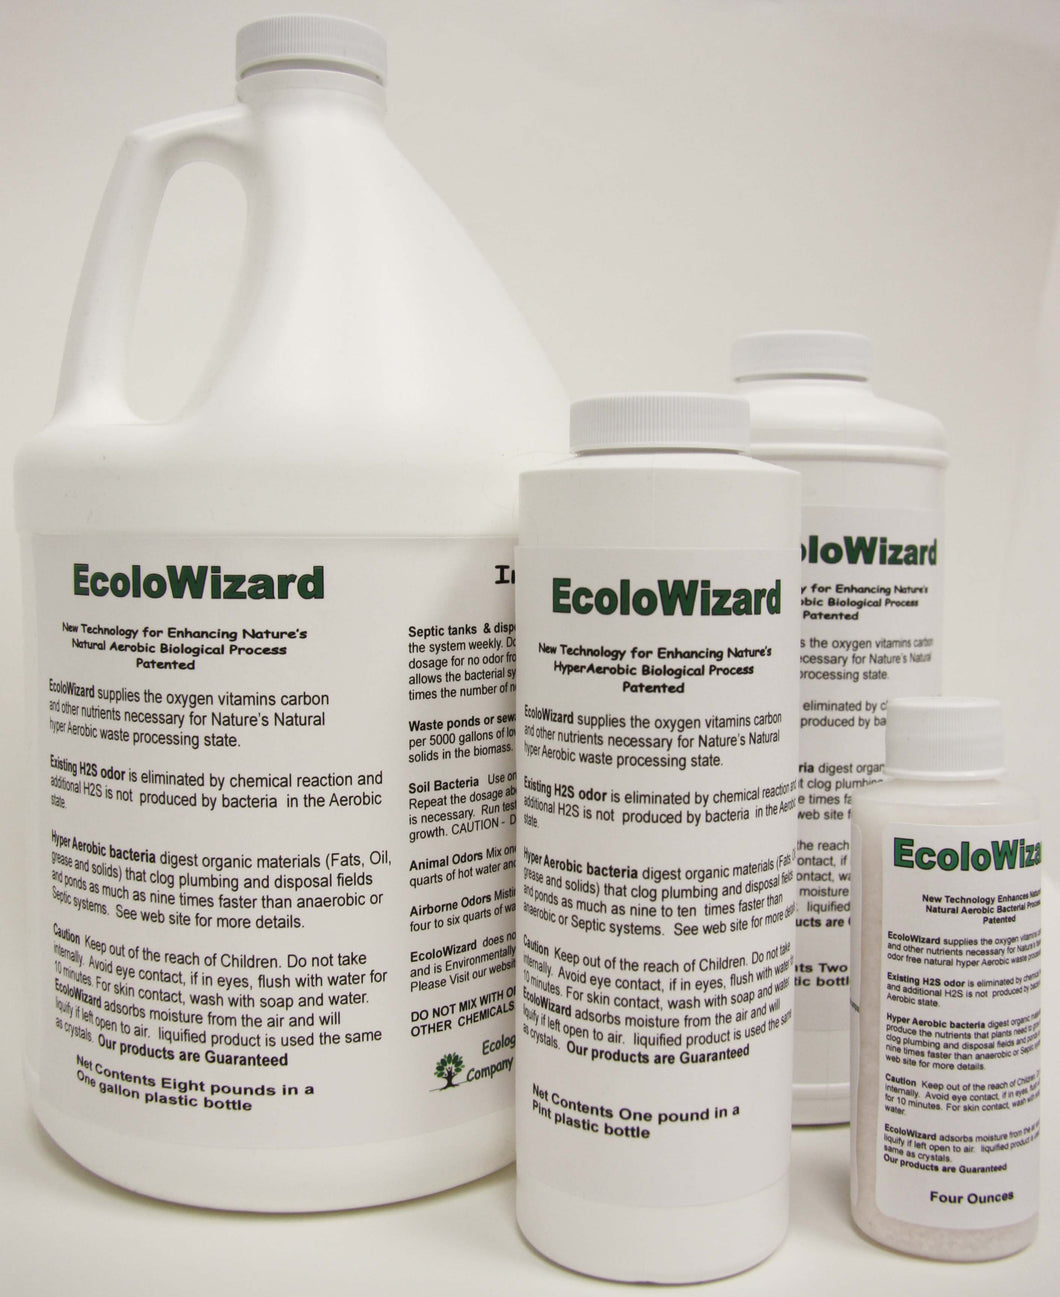 EcoloWizard - 8oz Sample Size Dry Product